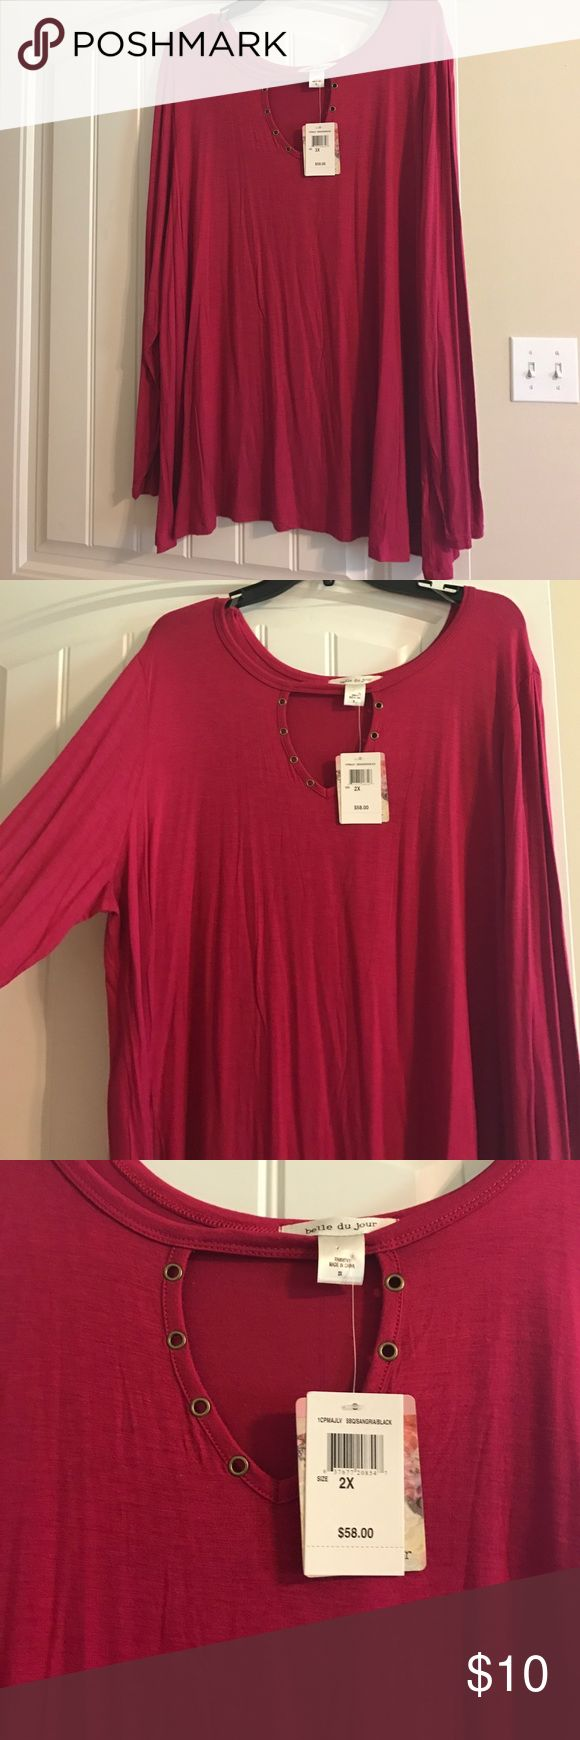 NWT cute top Sangria color blouse . With key hole neck with bronze ring holes to embellish is . New with tags . Never worn Belle Du Jour Tops Blouses